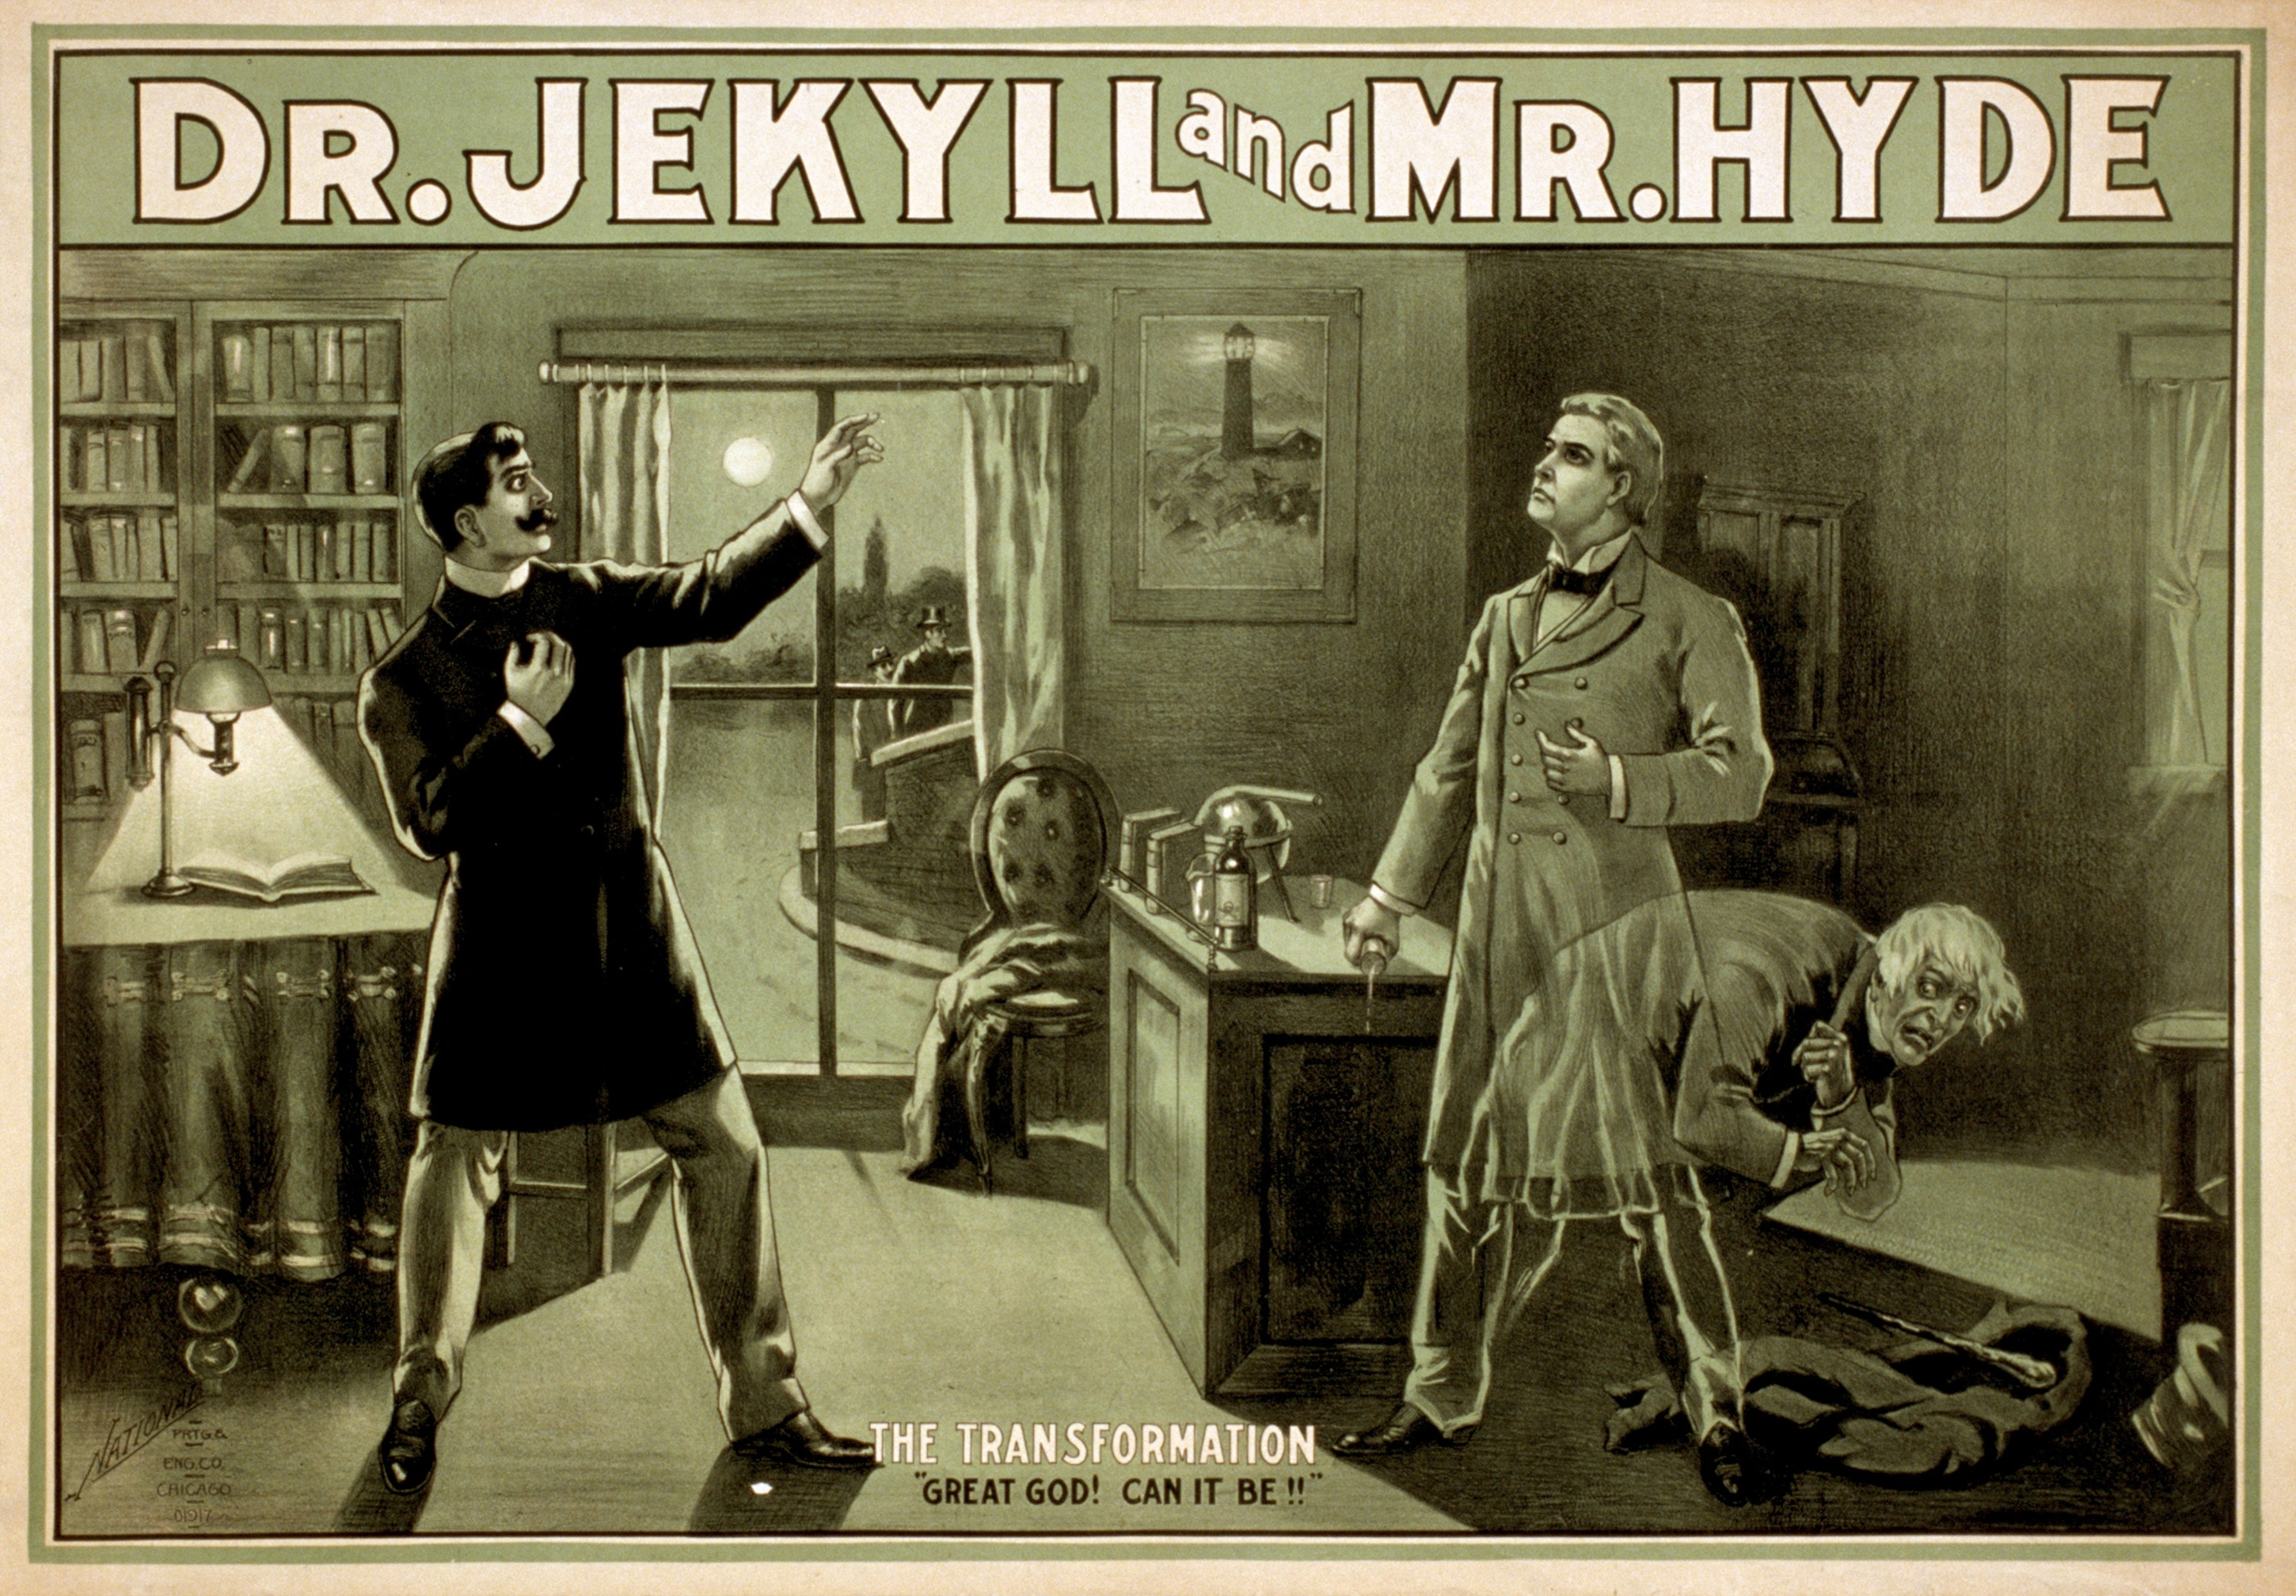 dr jekyll and mr hyde by robert louis stevenson Freud's personality theory in literature (the strange  dr jekyll and mr hyde in robert louis stevenson's  dr jekyll and mr hyde with stevenson.